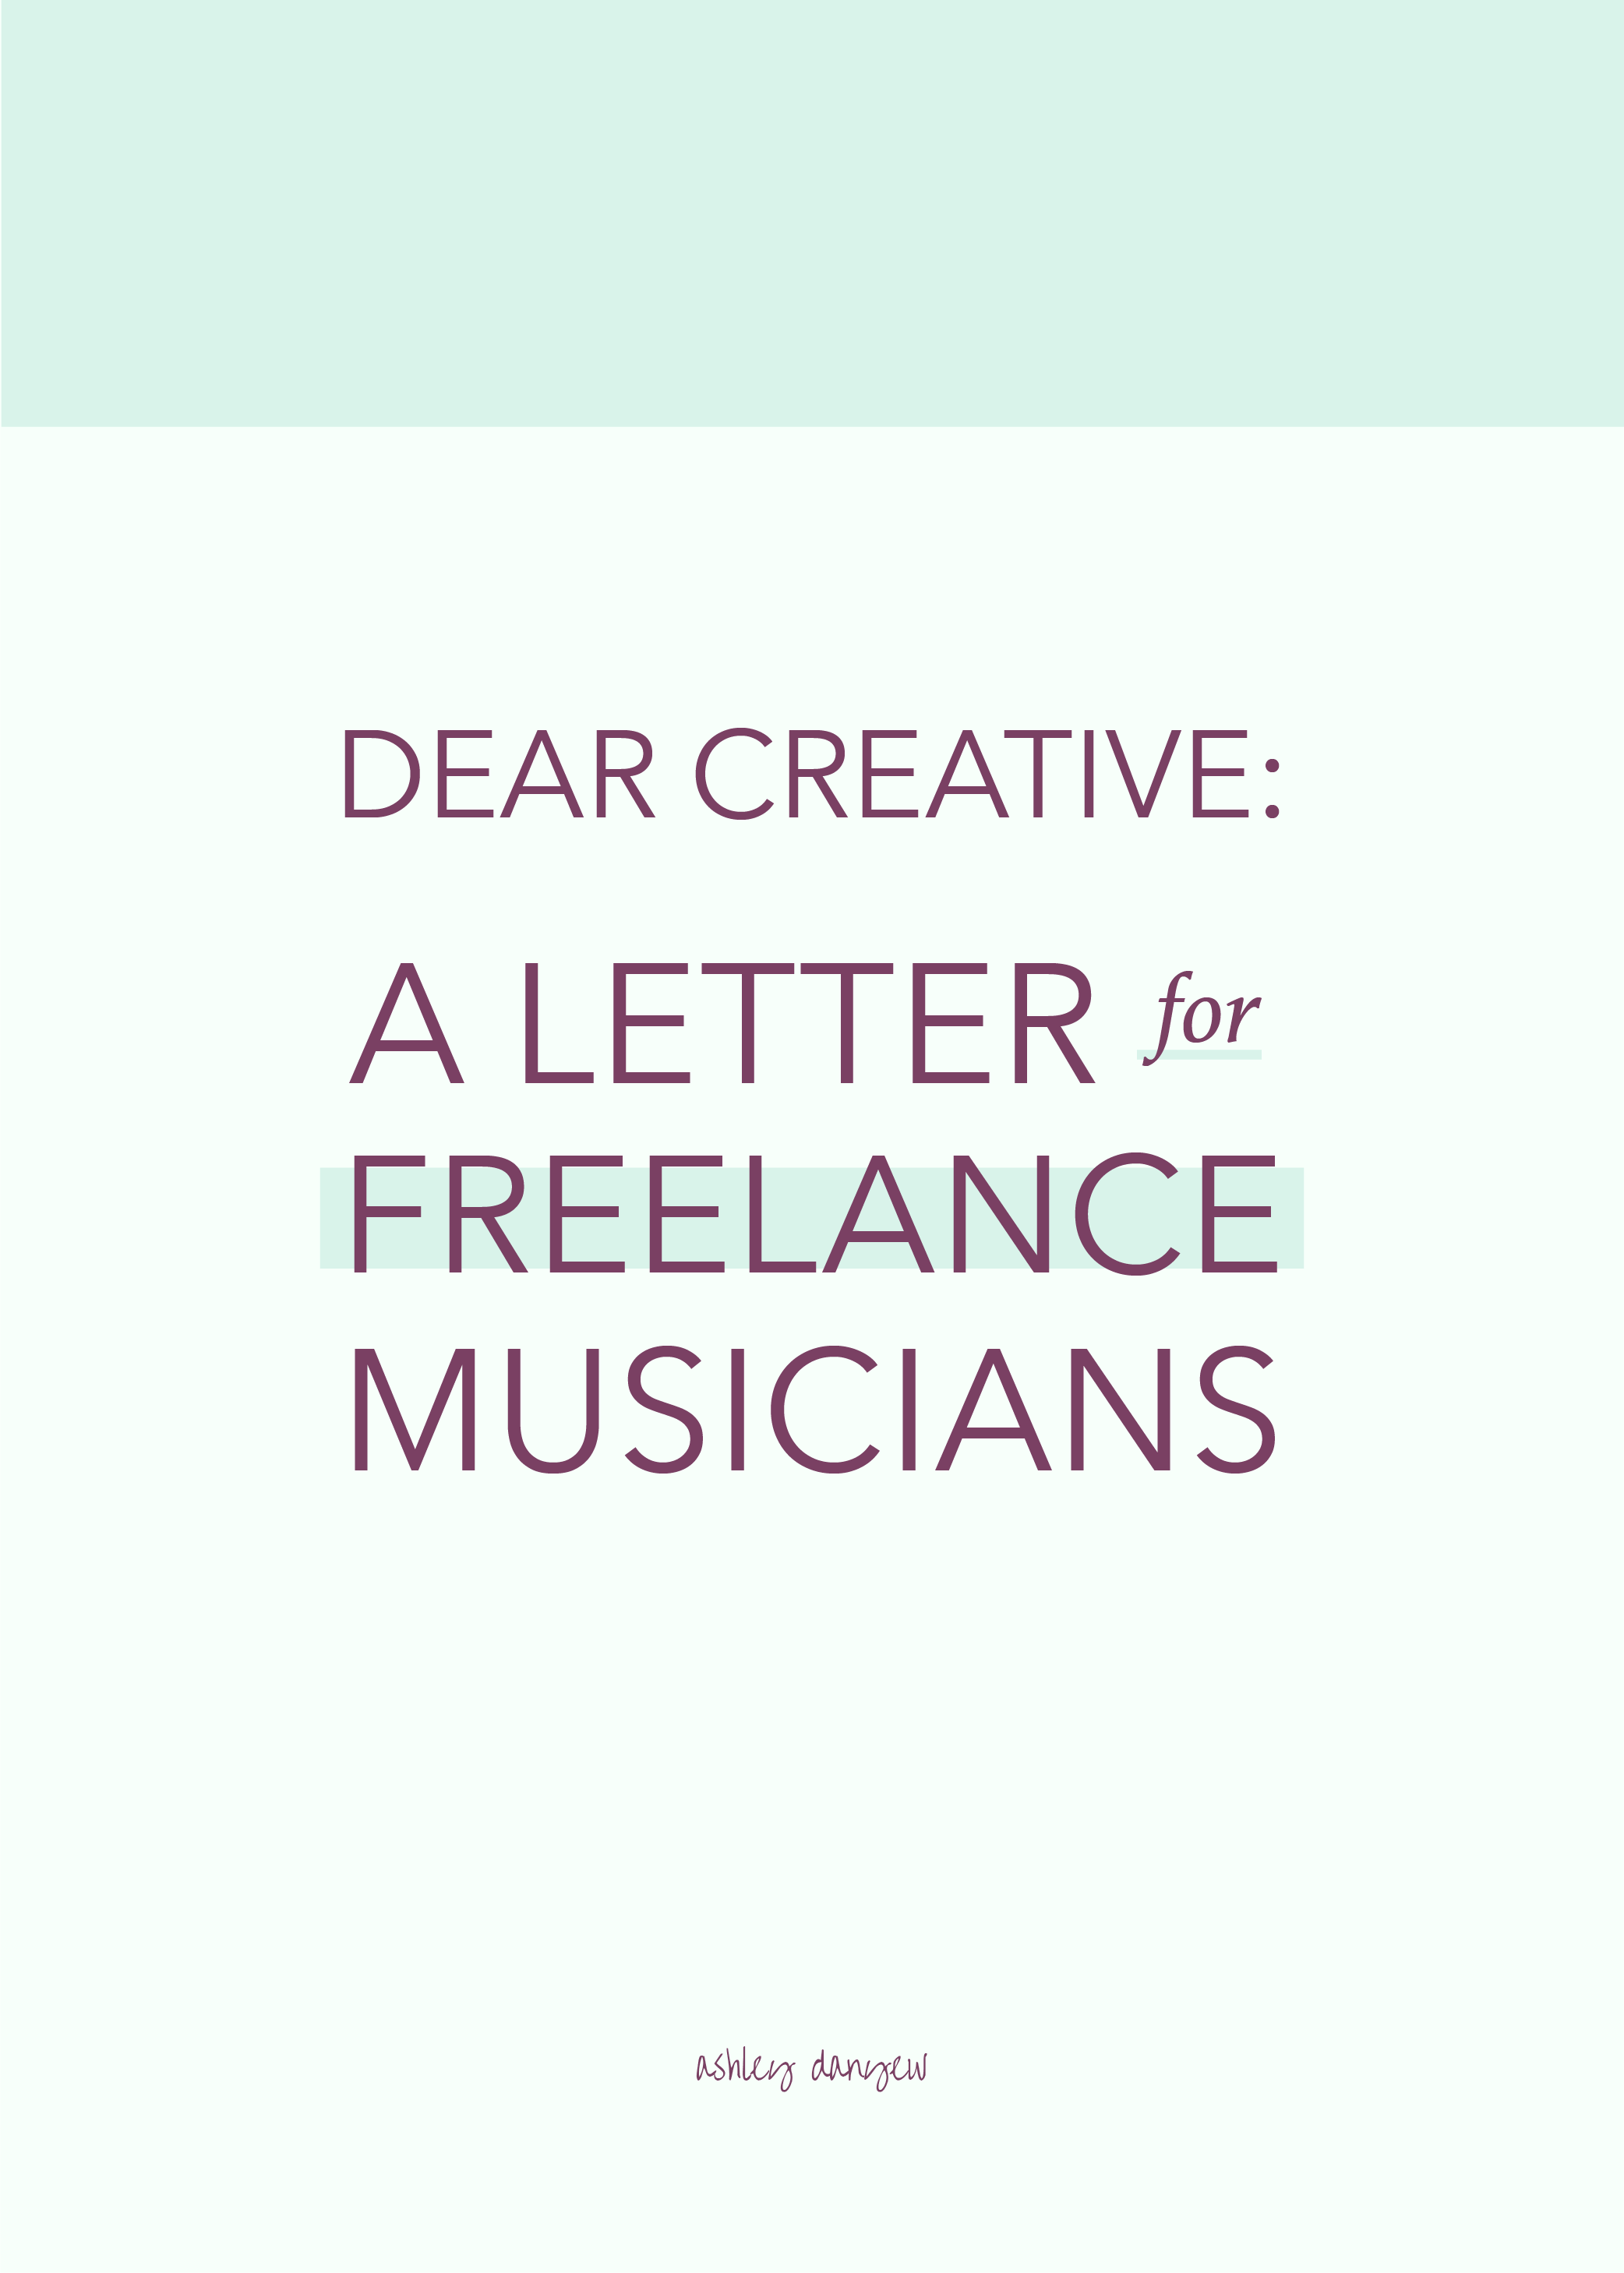 Dear Creative - A Letter for Freelance Musicians-19.png